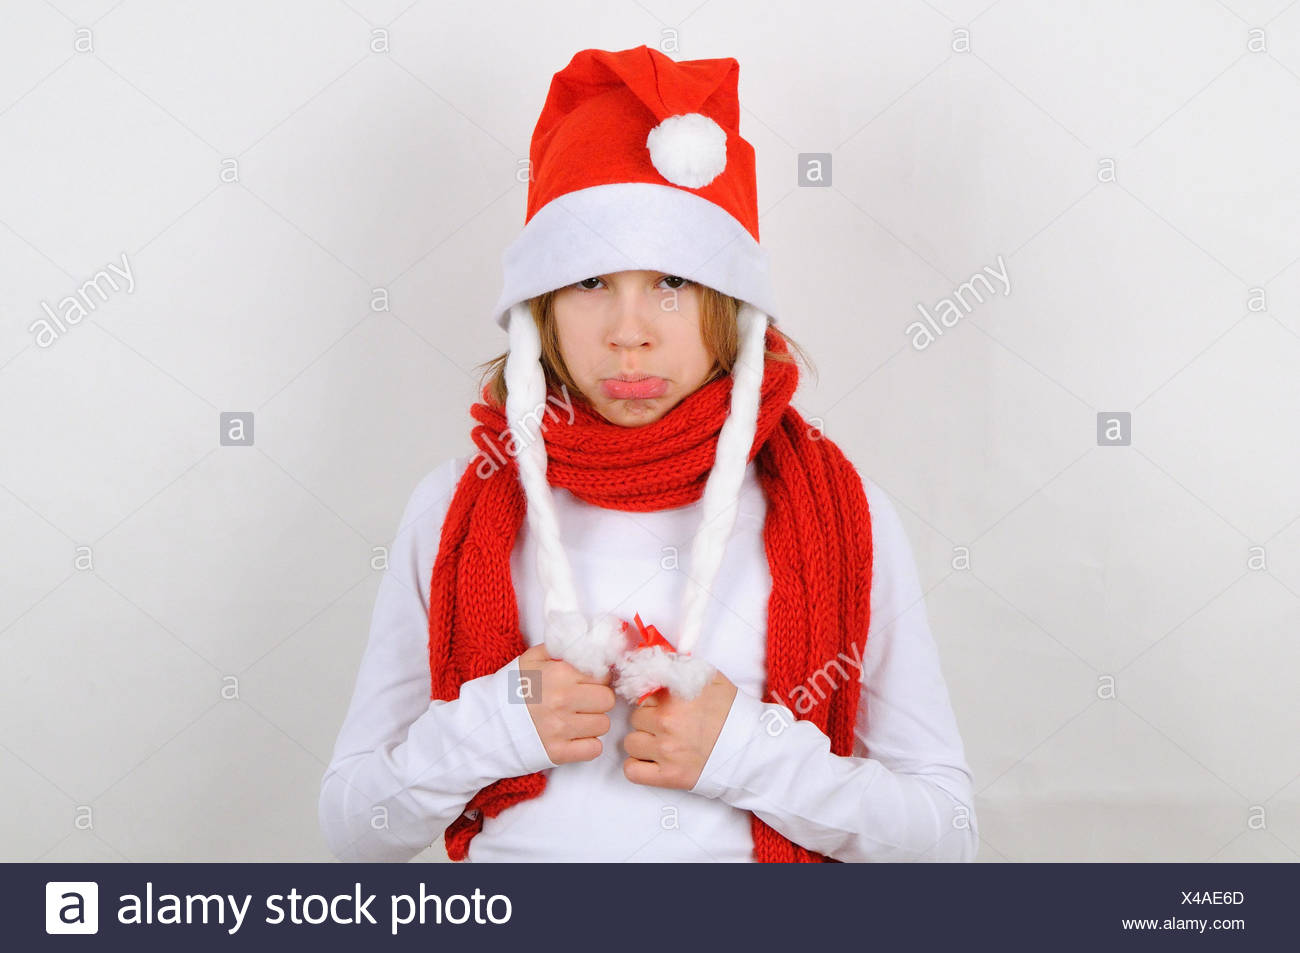 Girl, Santa's hat, view camera, defiantly, Christmas, winter, Santa, Santa's hat, person, child, scarf, red, gesture, offends, sulk, lining, Stock Photo